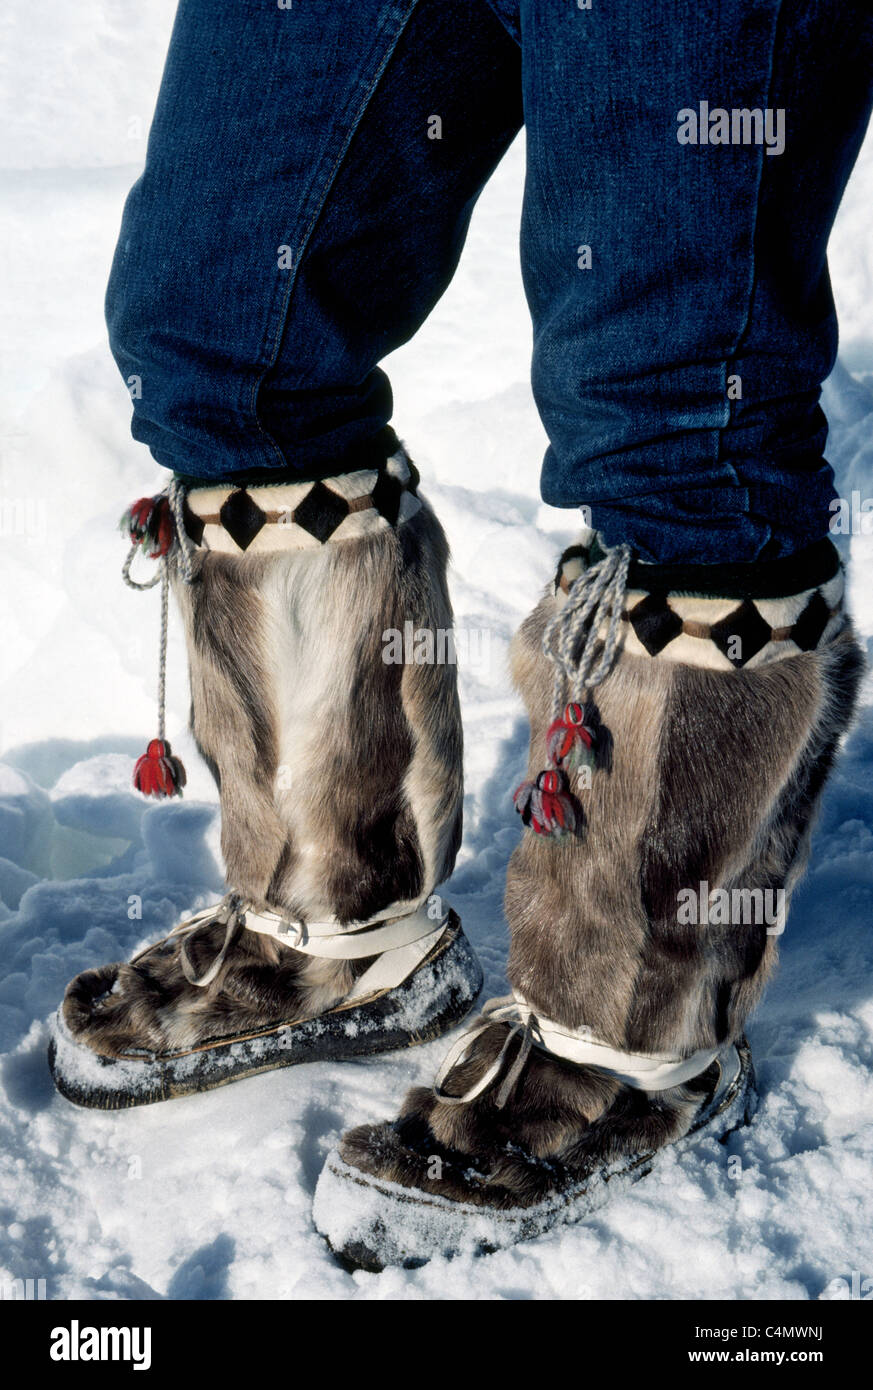 Mukluks made of animal skin and fur are